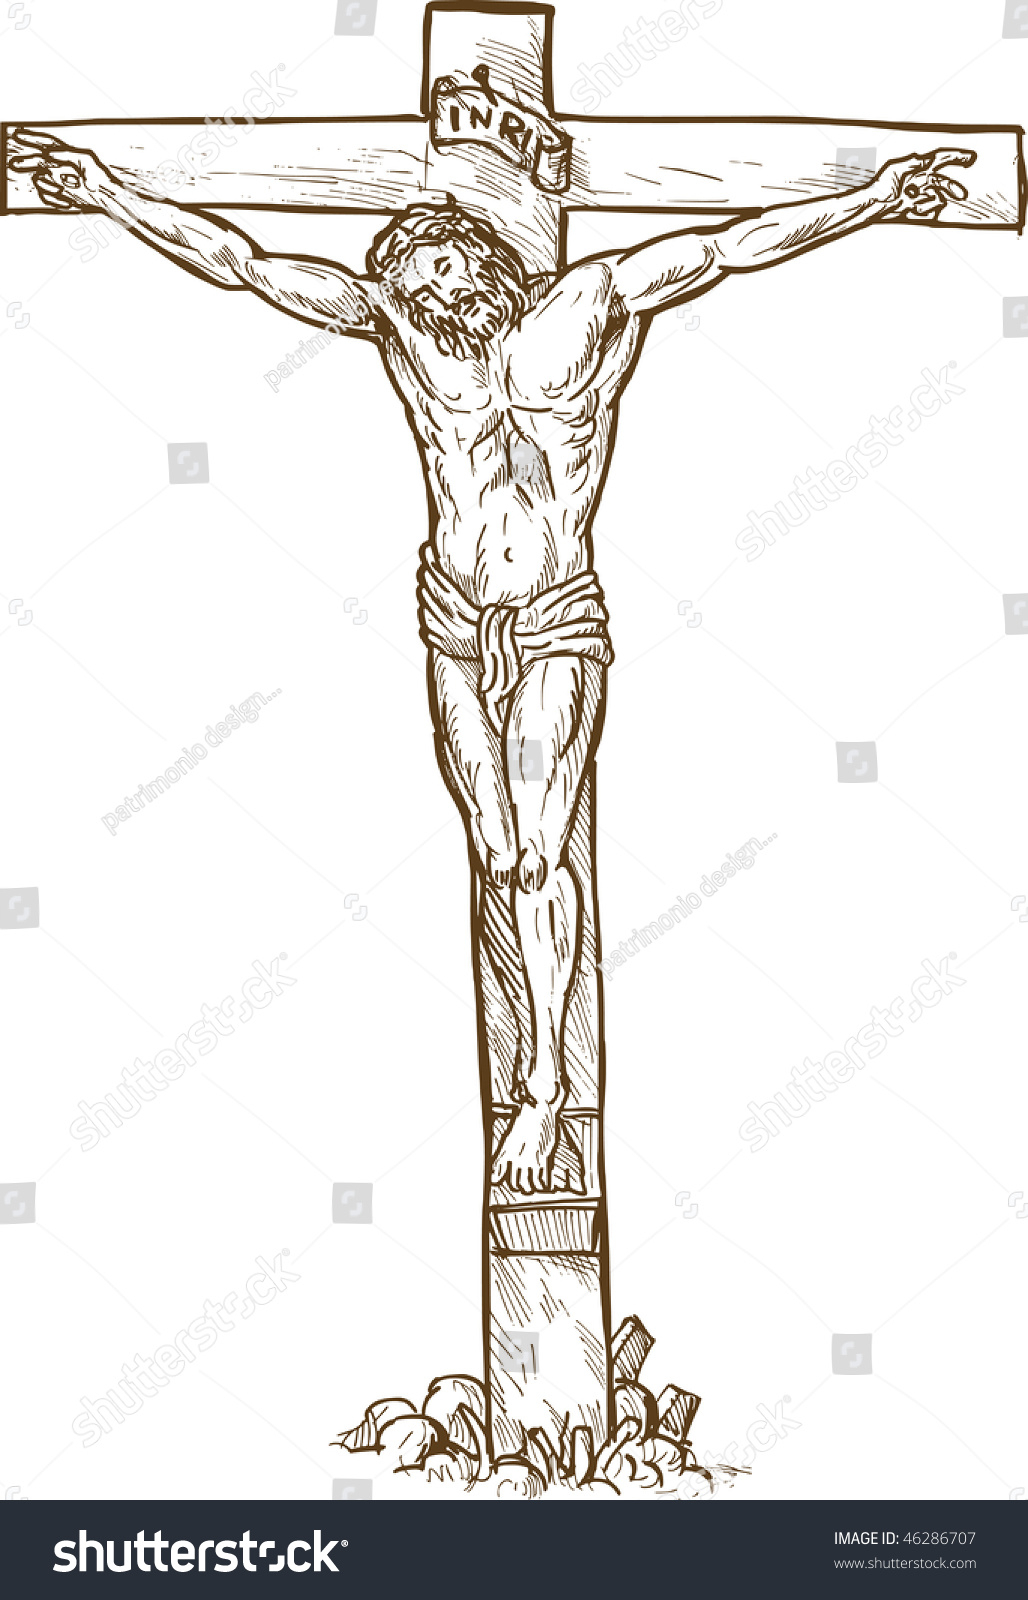 1028x1600 Realistic Drawings Of Jesus On The Cross Hand Drawn Sketch